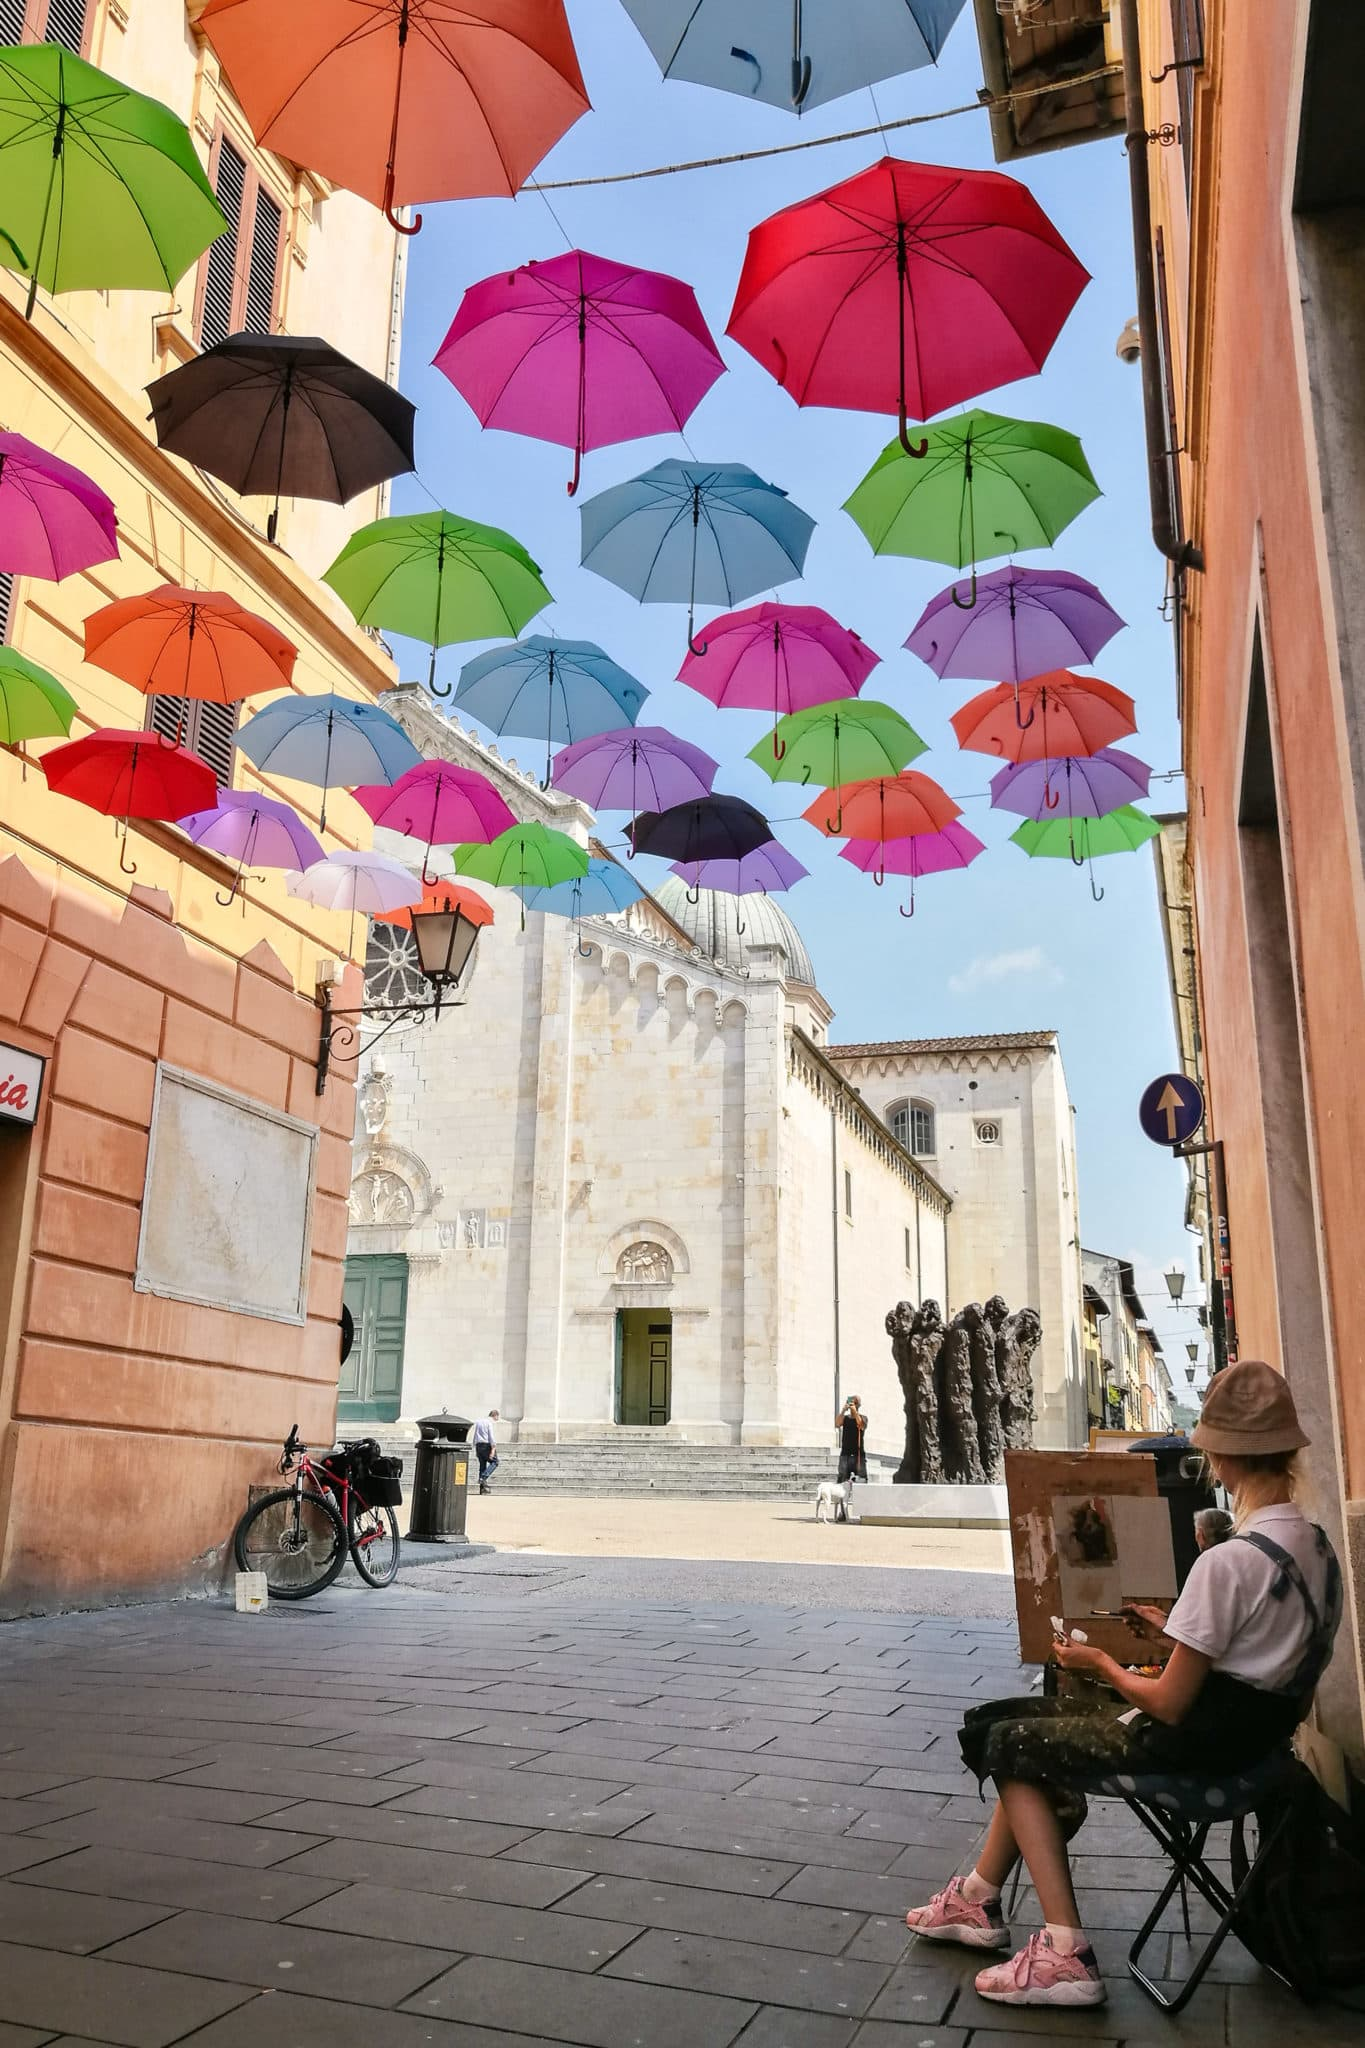 Painter under the floating umbrellas in Pietrasanta